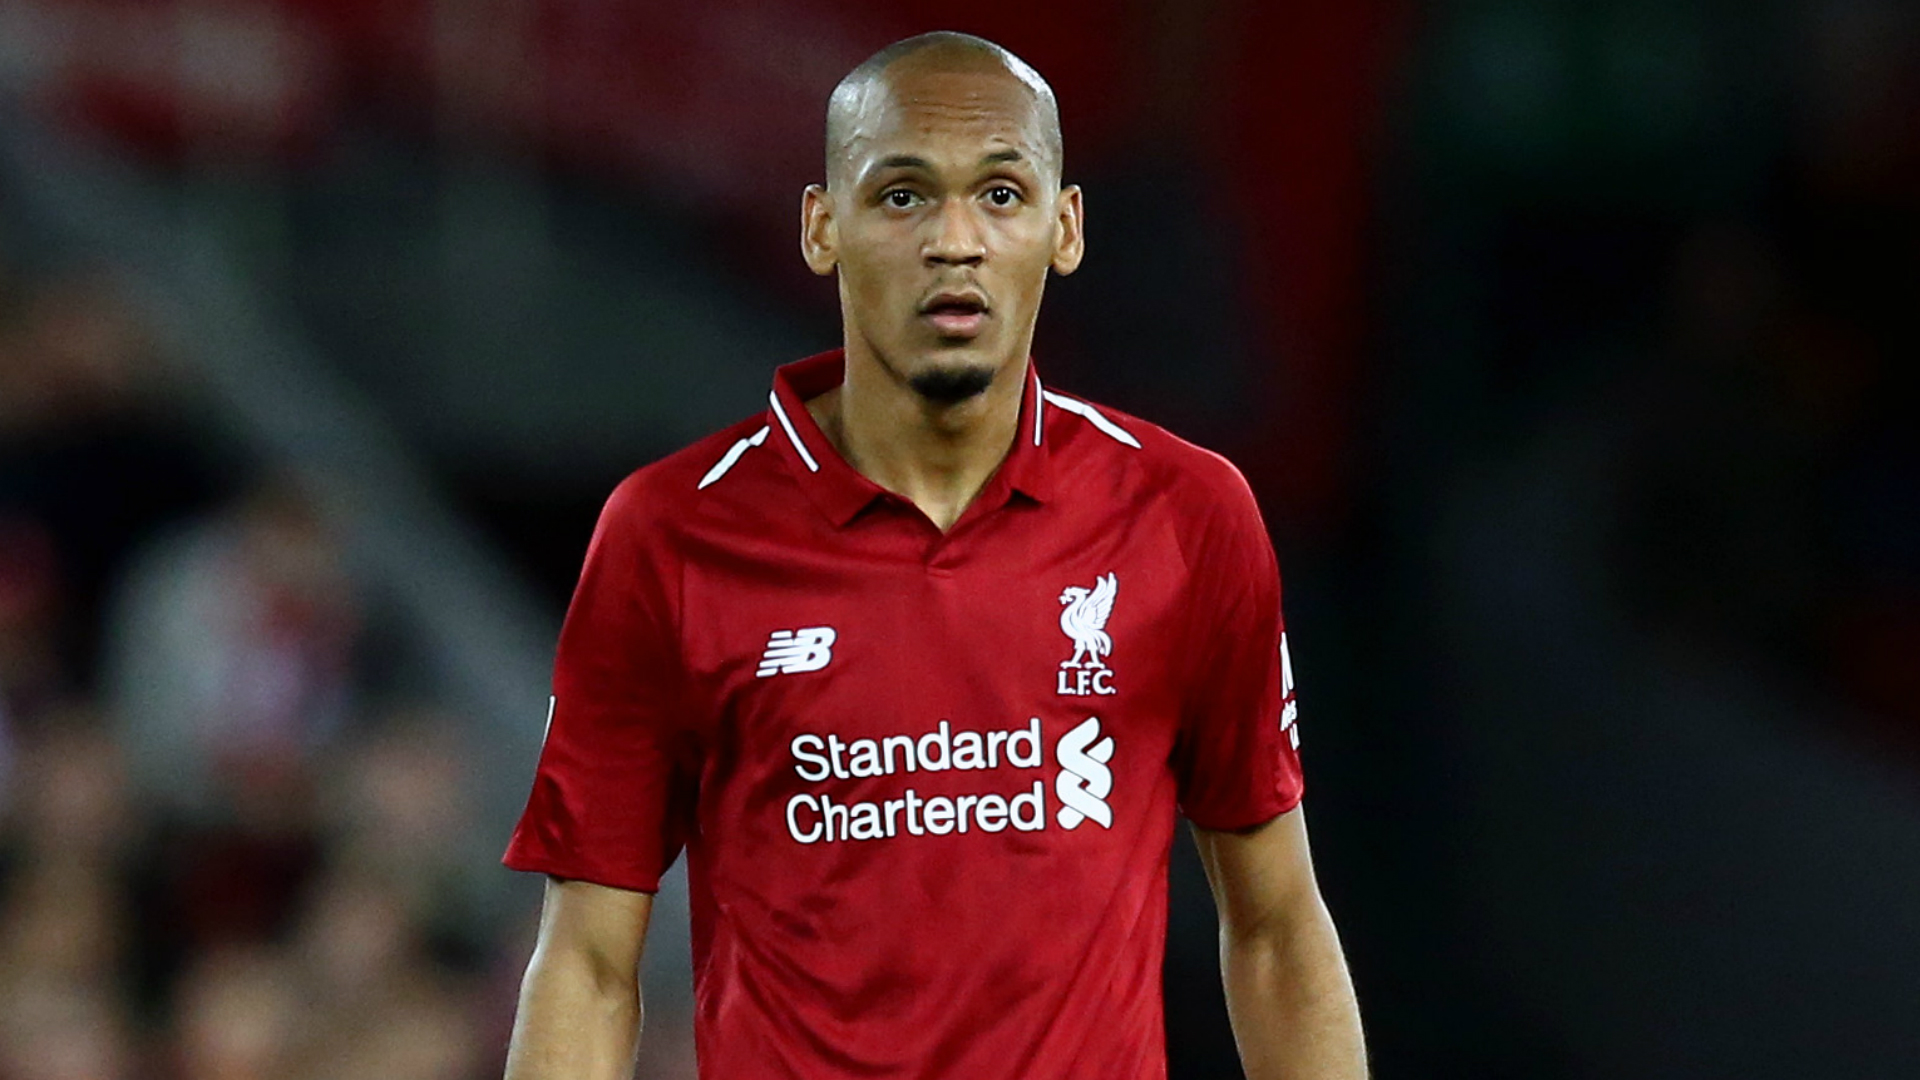 Fabinho to get chance against Red Star, says Klopp